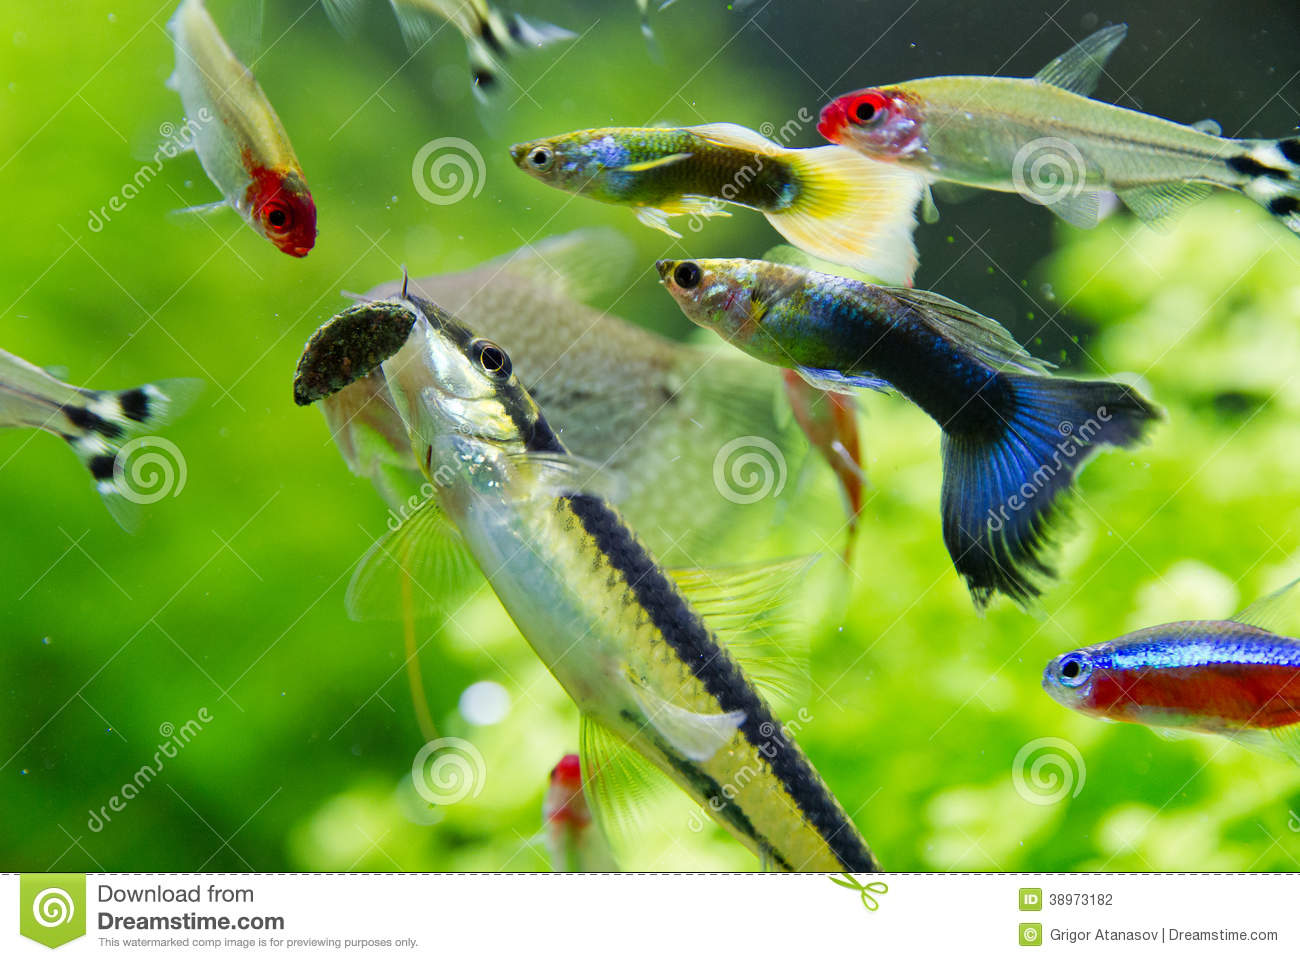 Rummy nose tetra and guppy fish in aquarium stock photo for Freshwater fish online